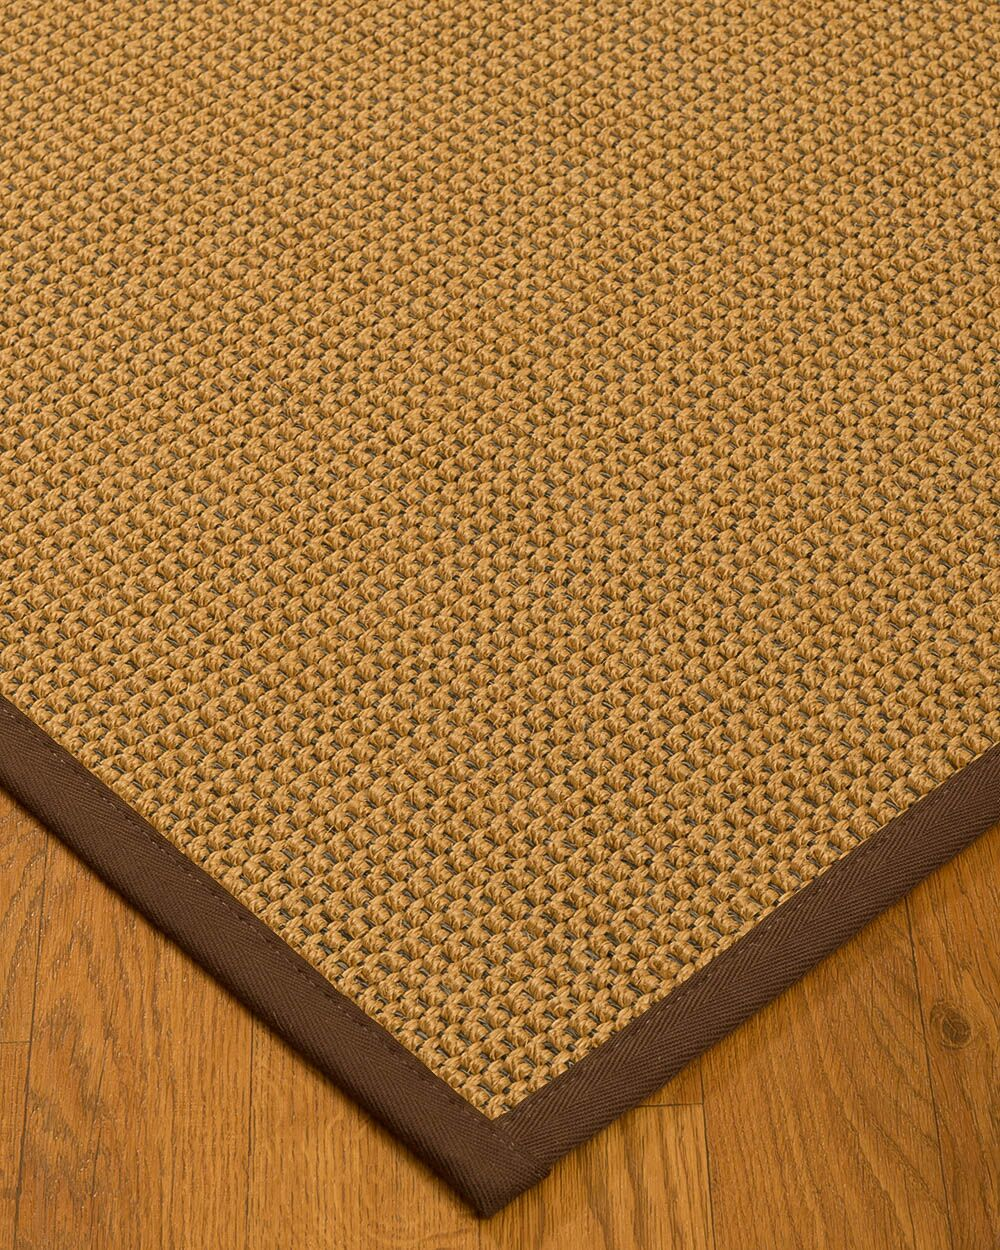 Atia Border Hand-Woven Beige/Brown Area Rug Rug Pad Included: No, Rug Size: Rectangle 3' x 5'